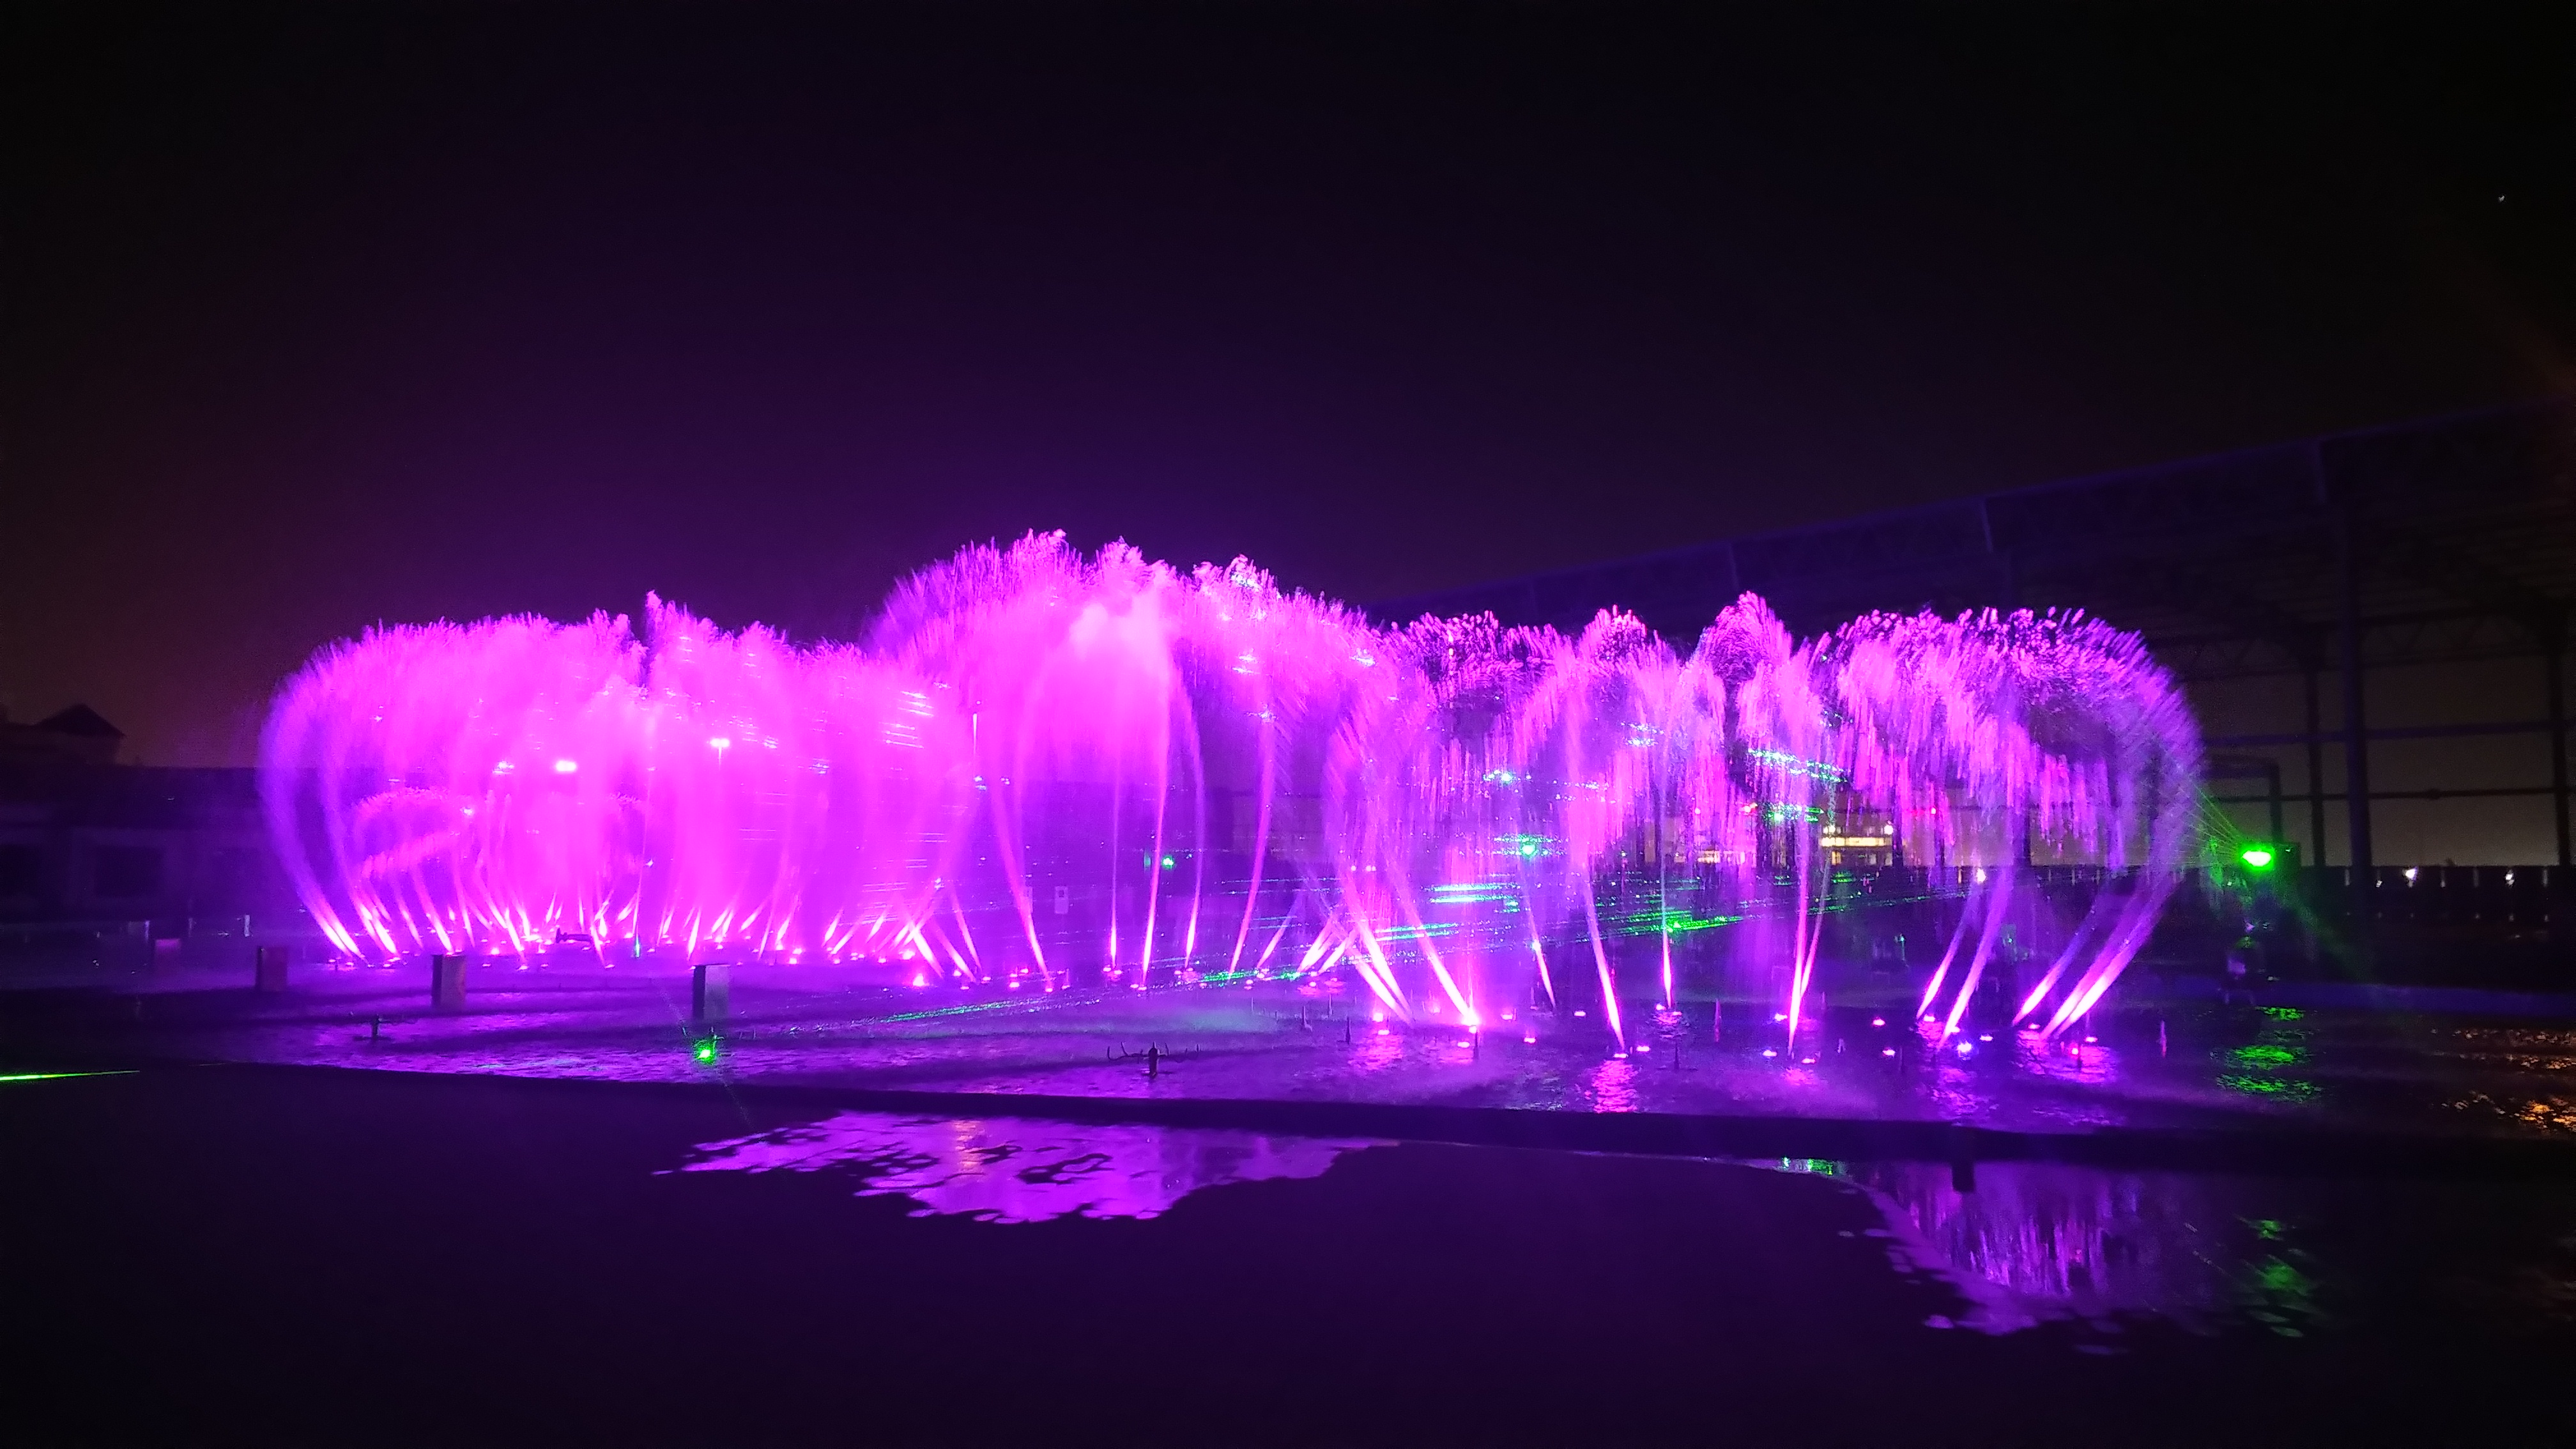 Saudi Arabia Jeddah city water show